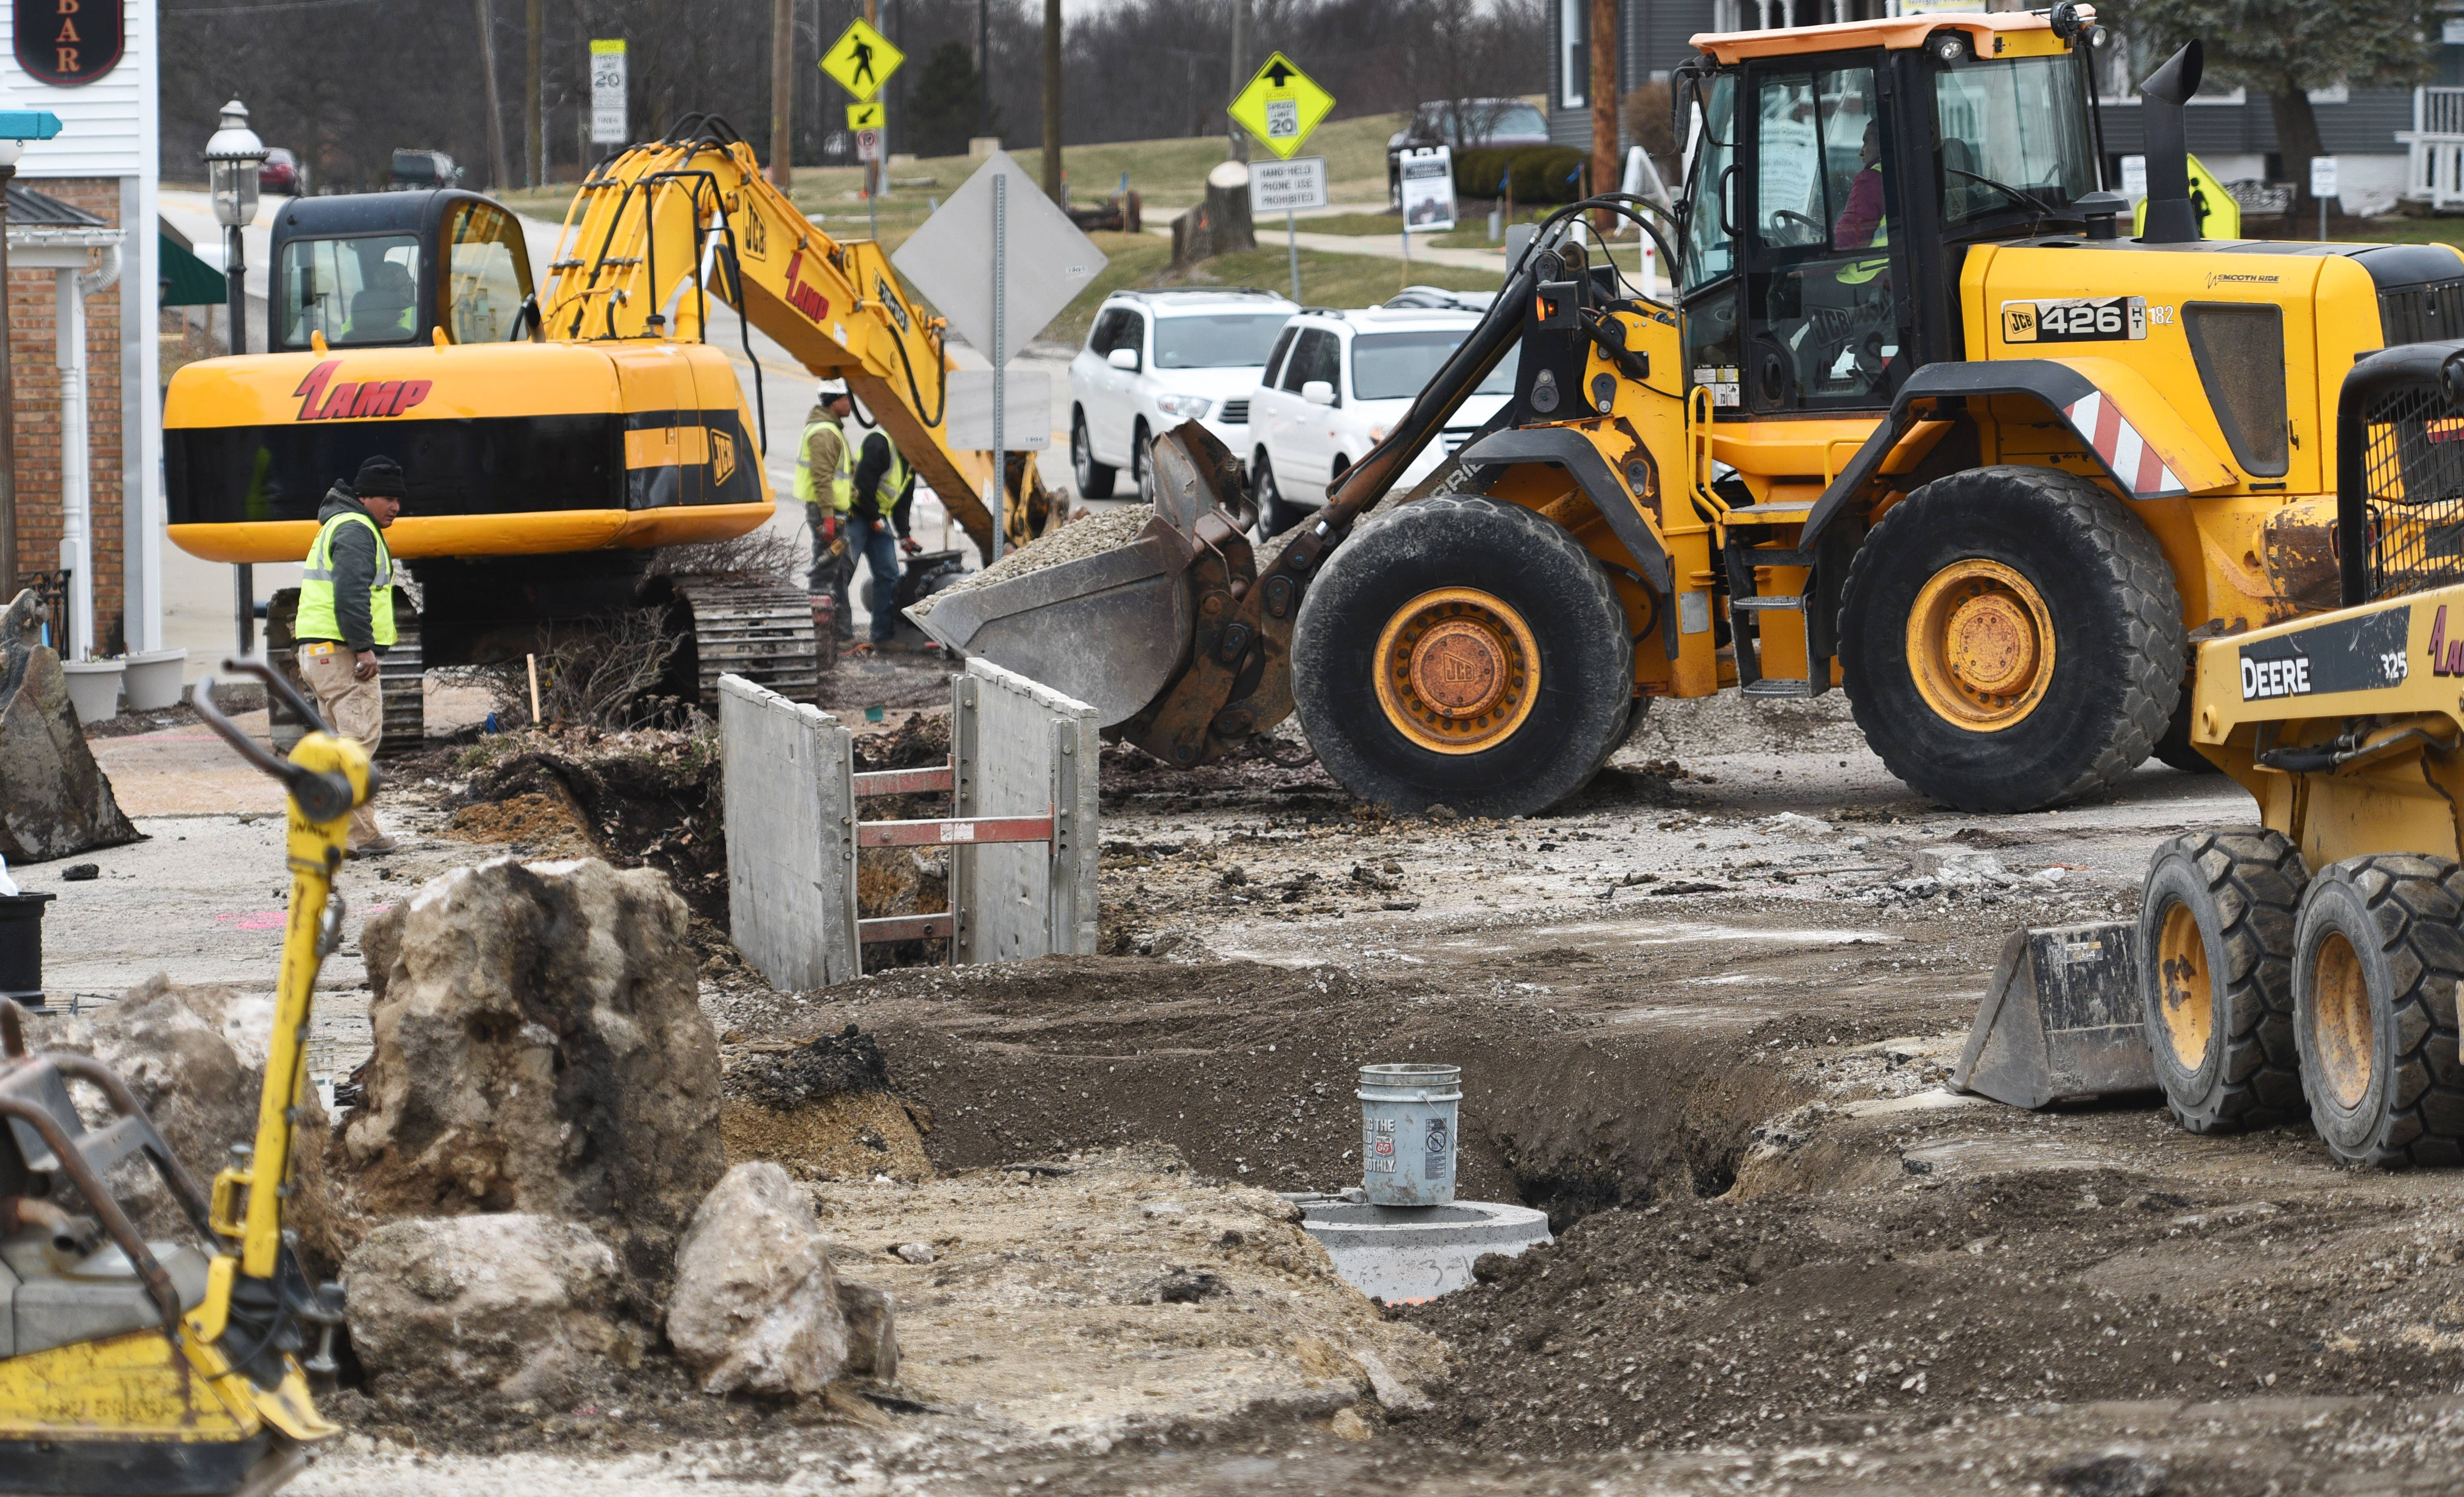 Lake County's $100M road plan: Quentin widening, Route 45 bypass